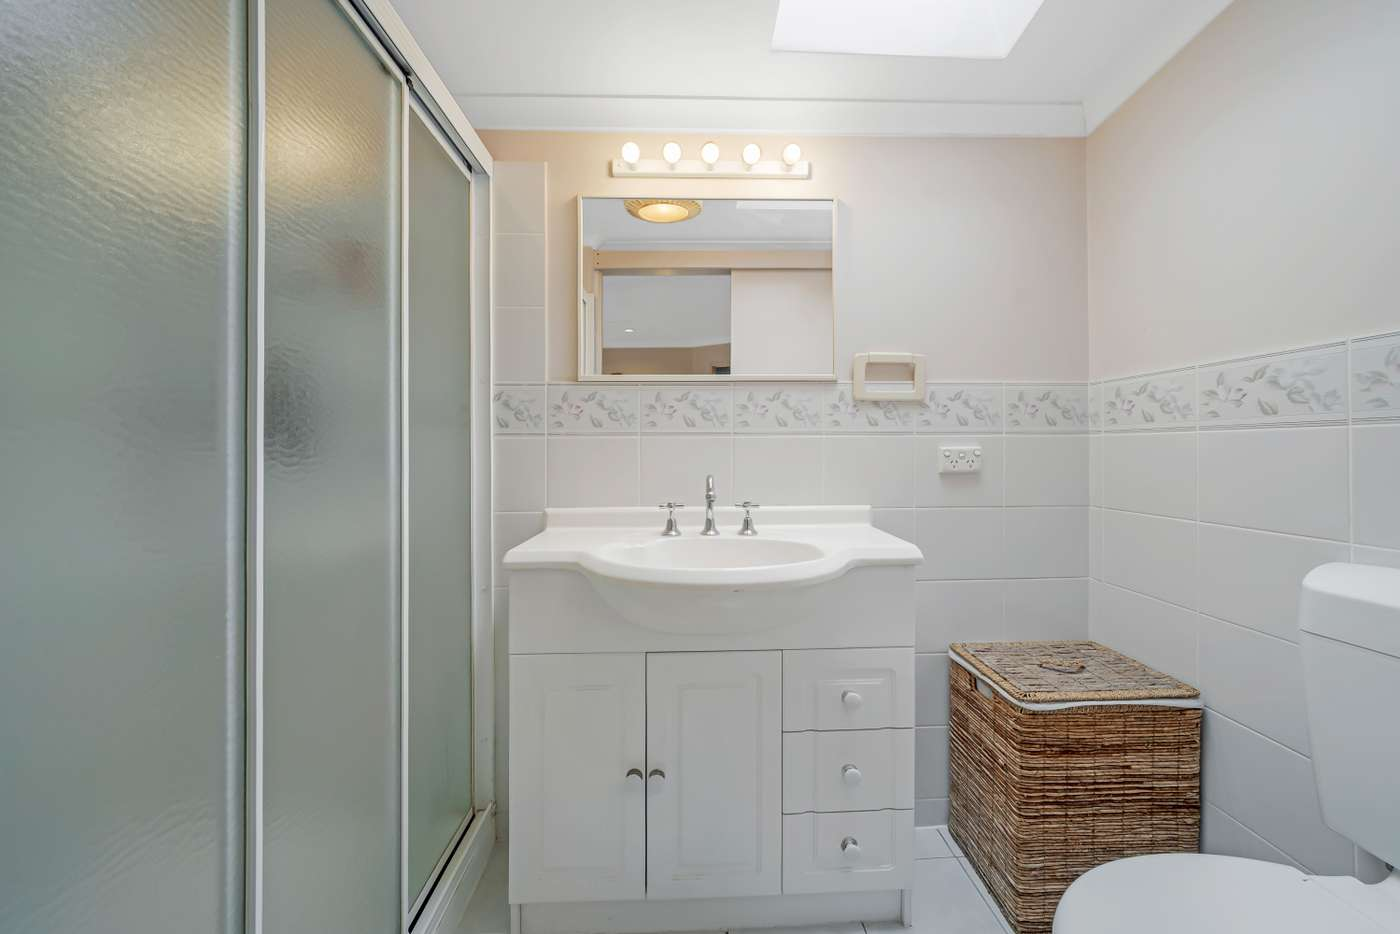 Seventh view of Homely house listing, 58 Coleman Crescent, Springwood QLD 4127